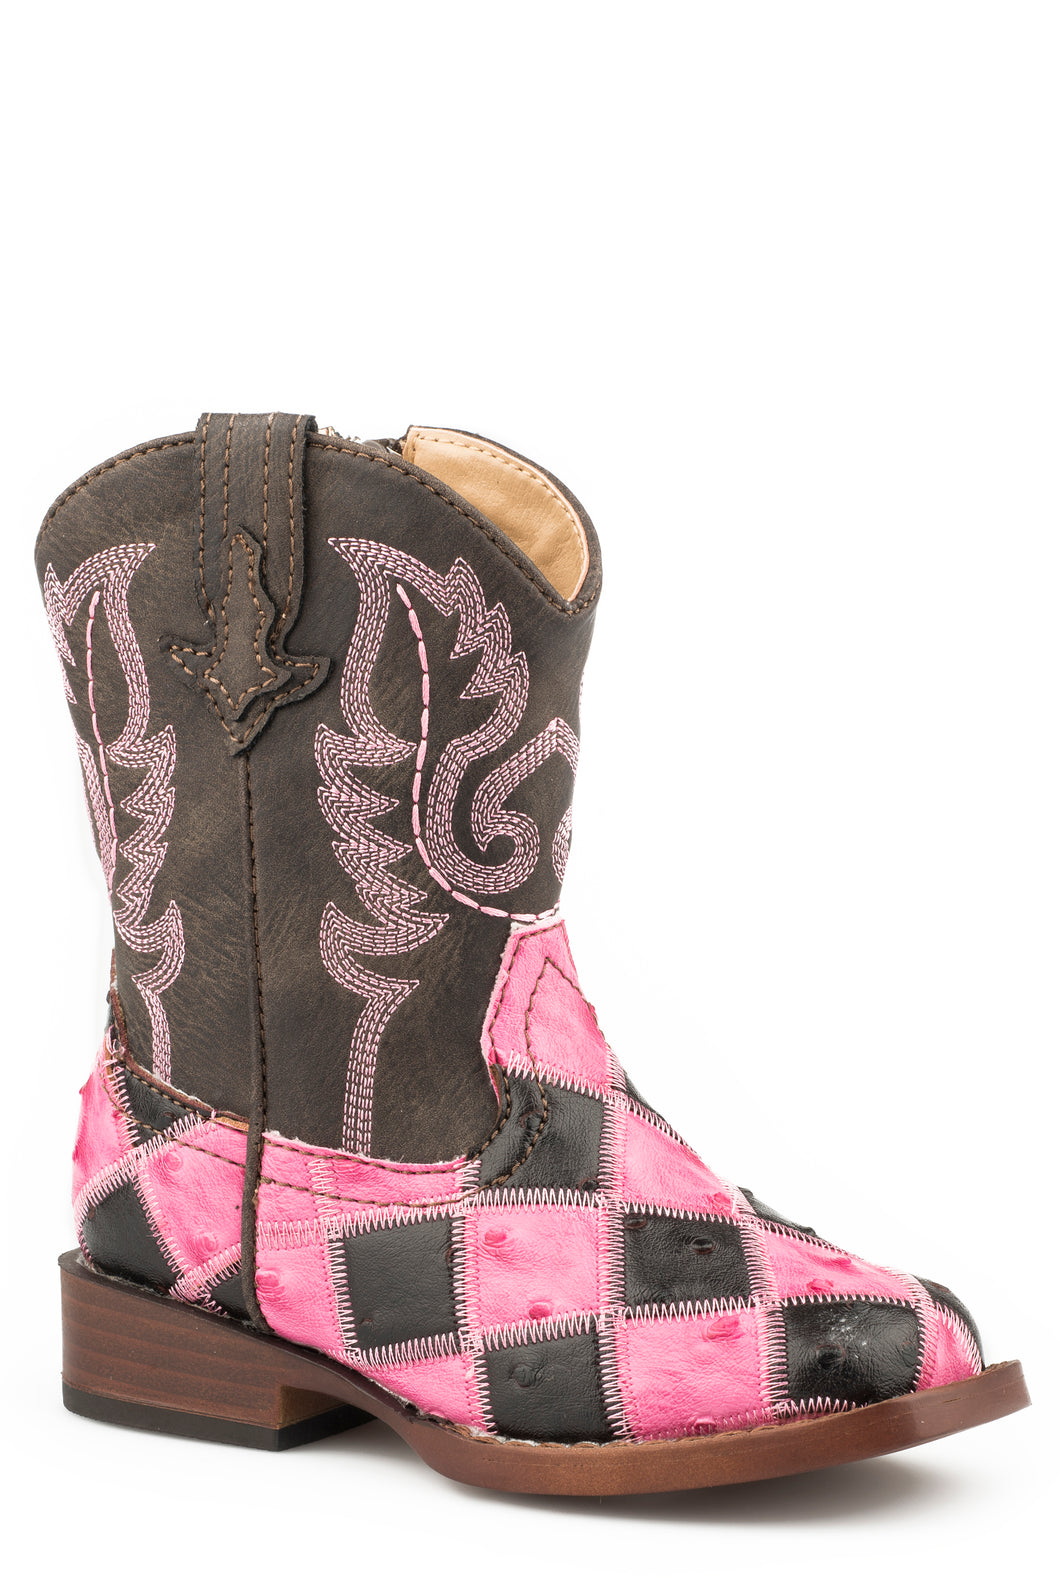 Bird Blocks Boot Toddlers Boots Pinkbrown Patchwork Faux Ostrich Vamp